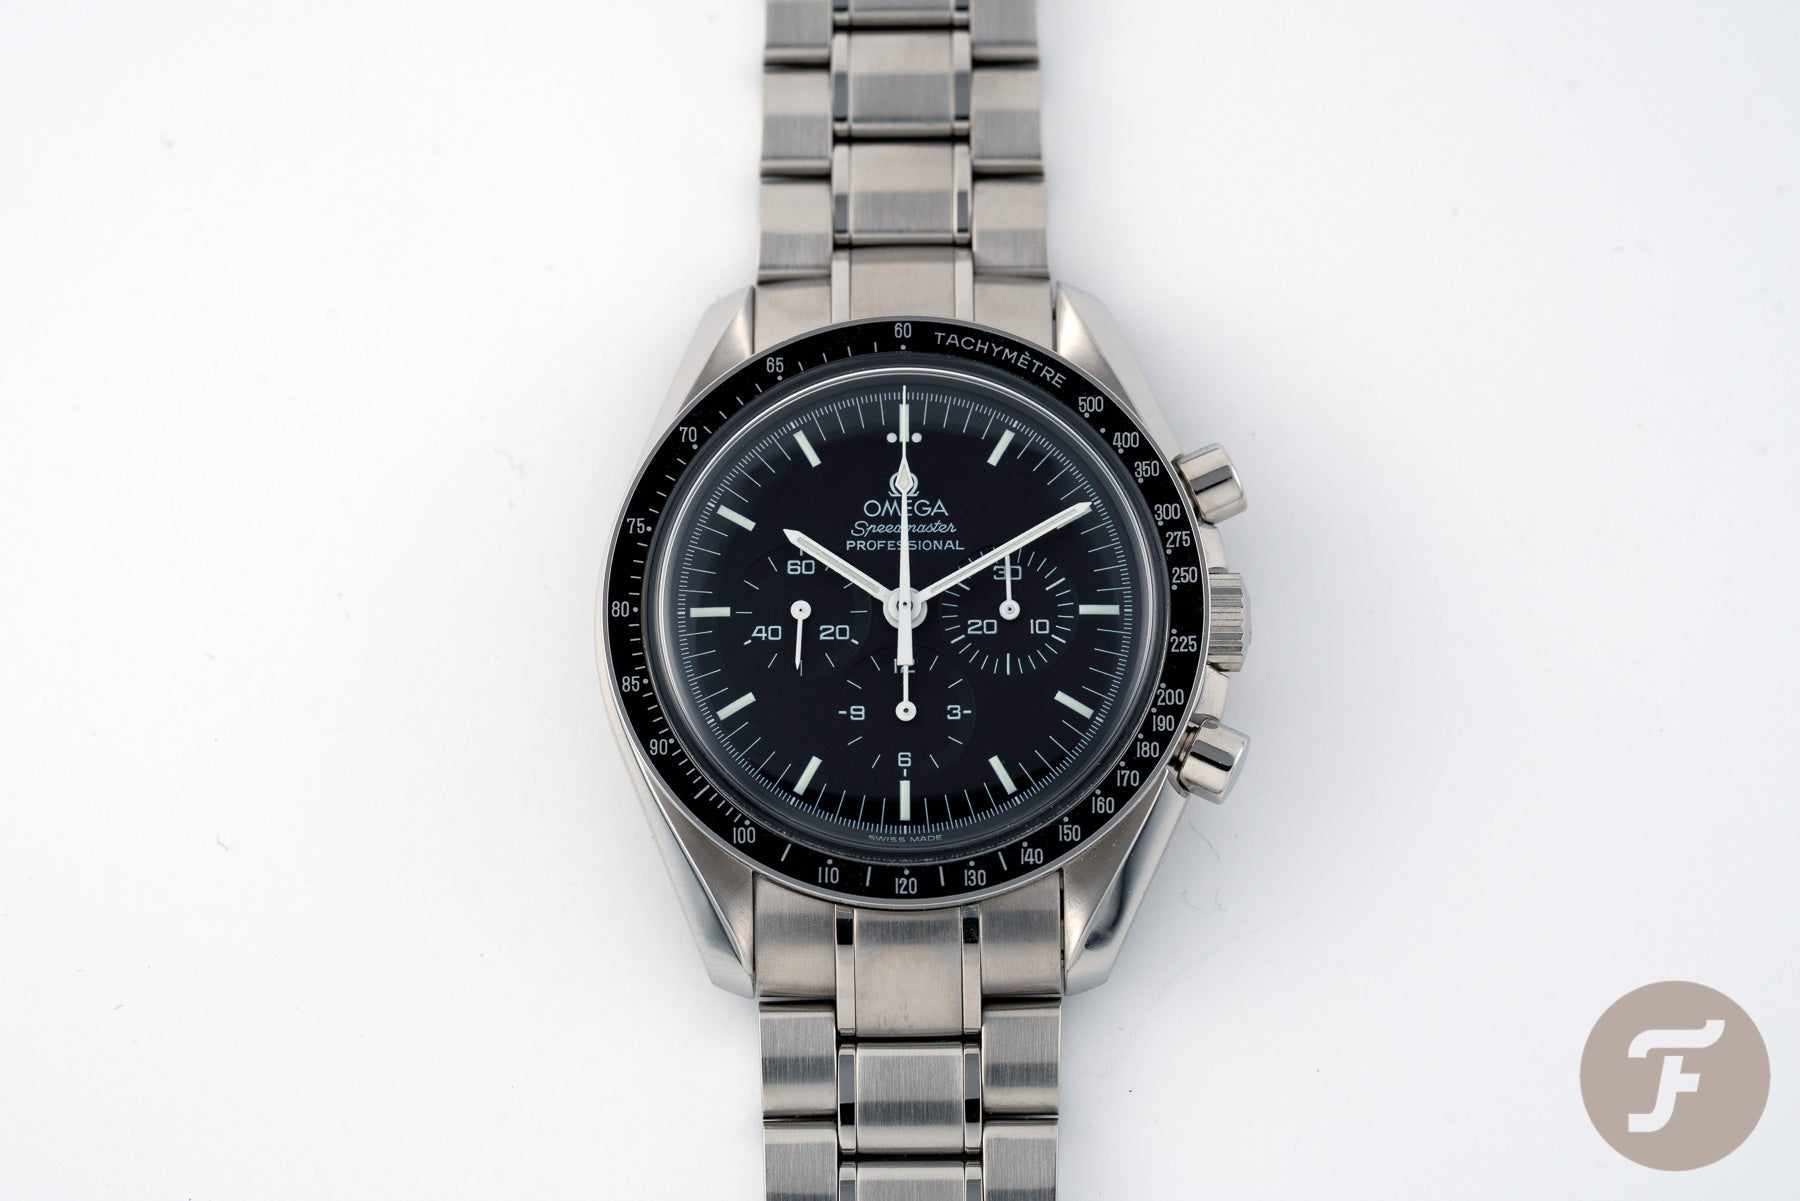 Omega Speedmaster Professional Apollo XVII 30th (2002)